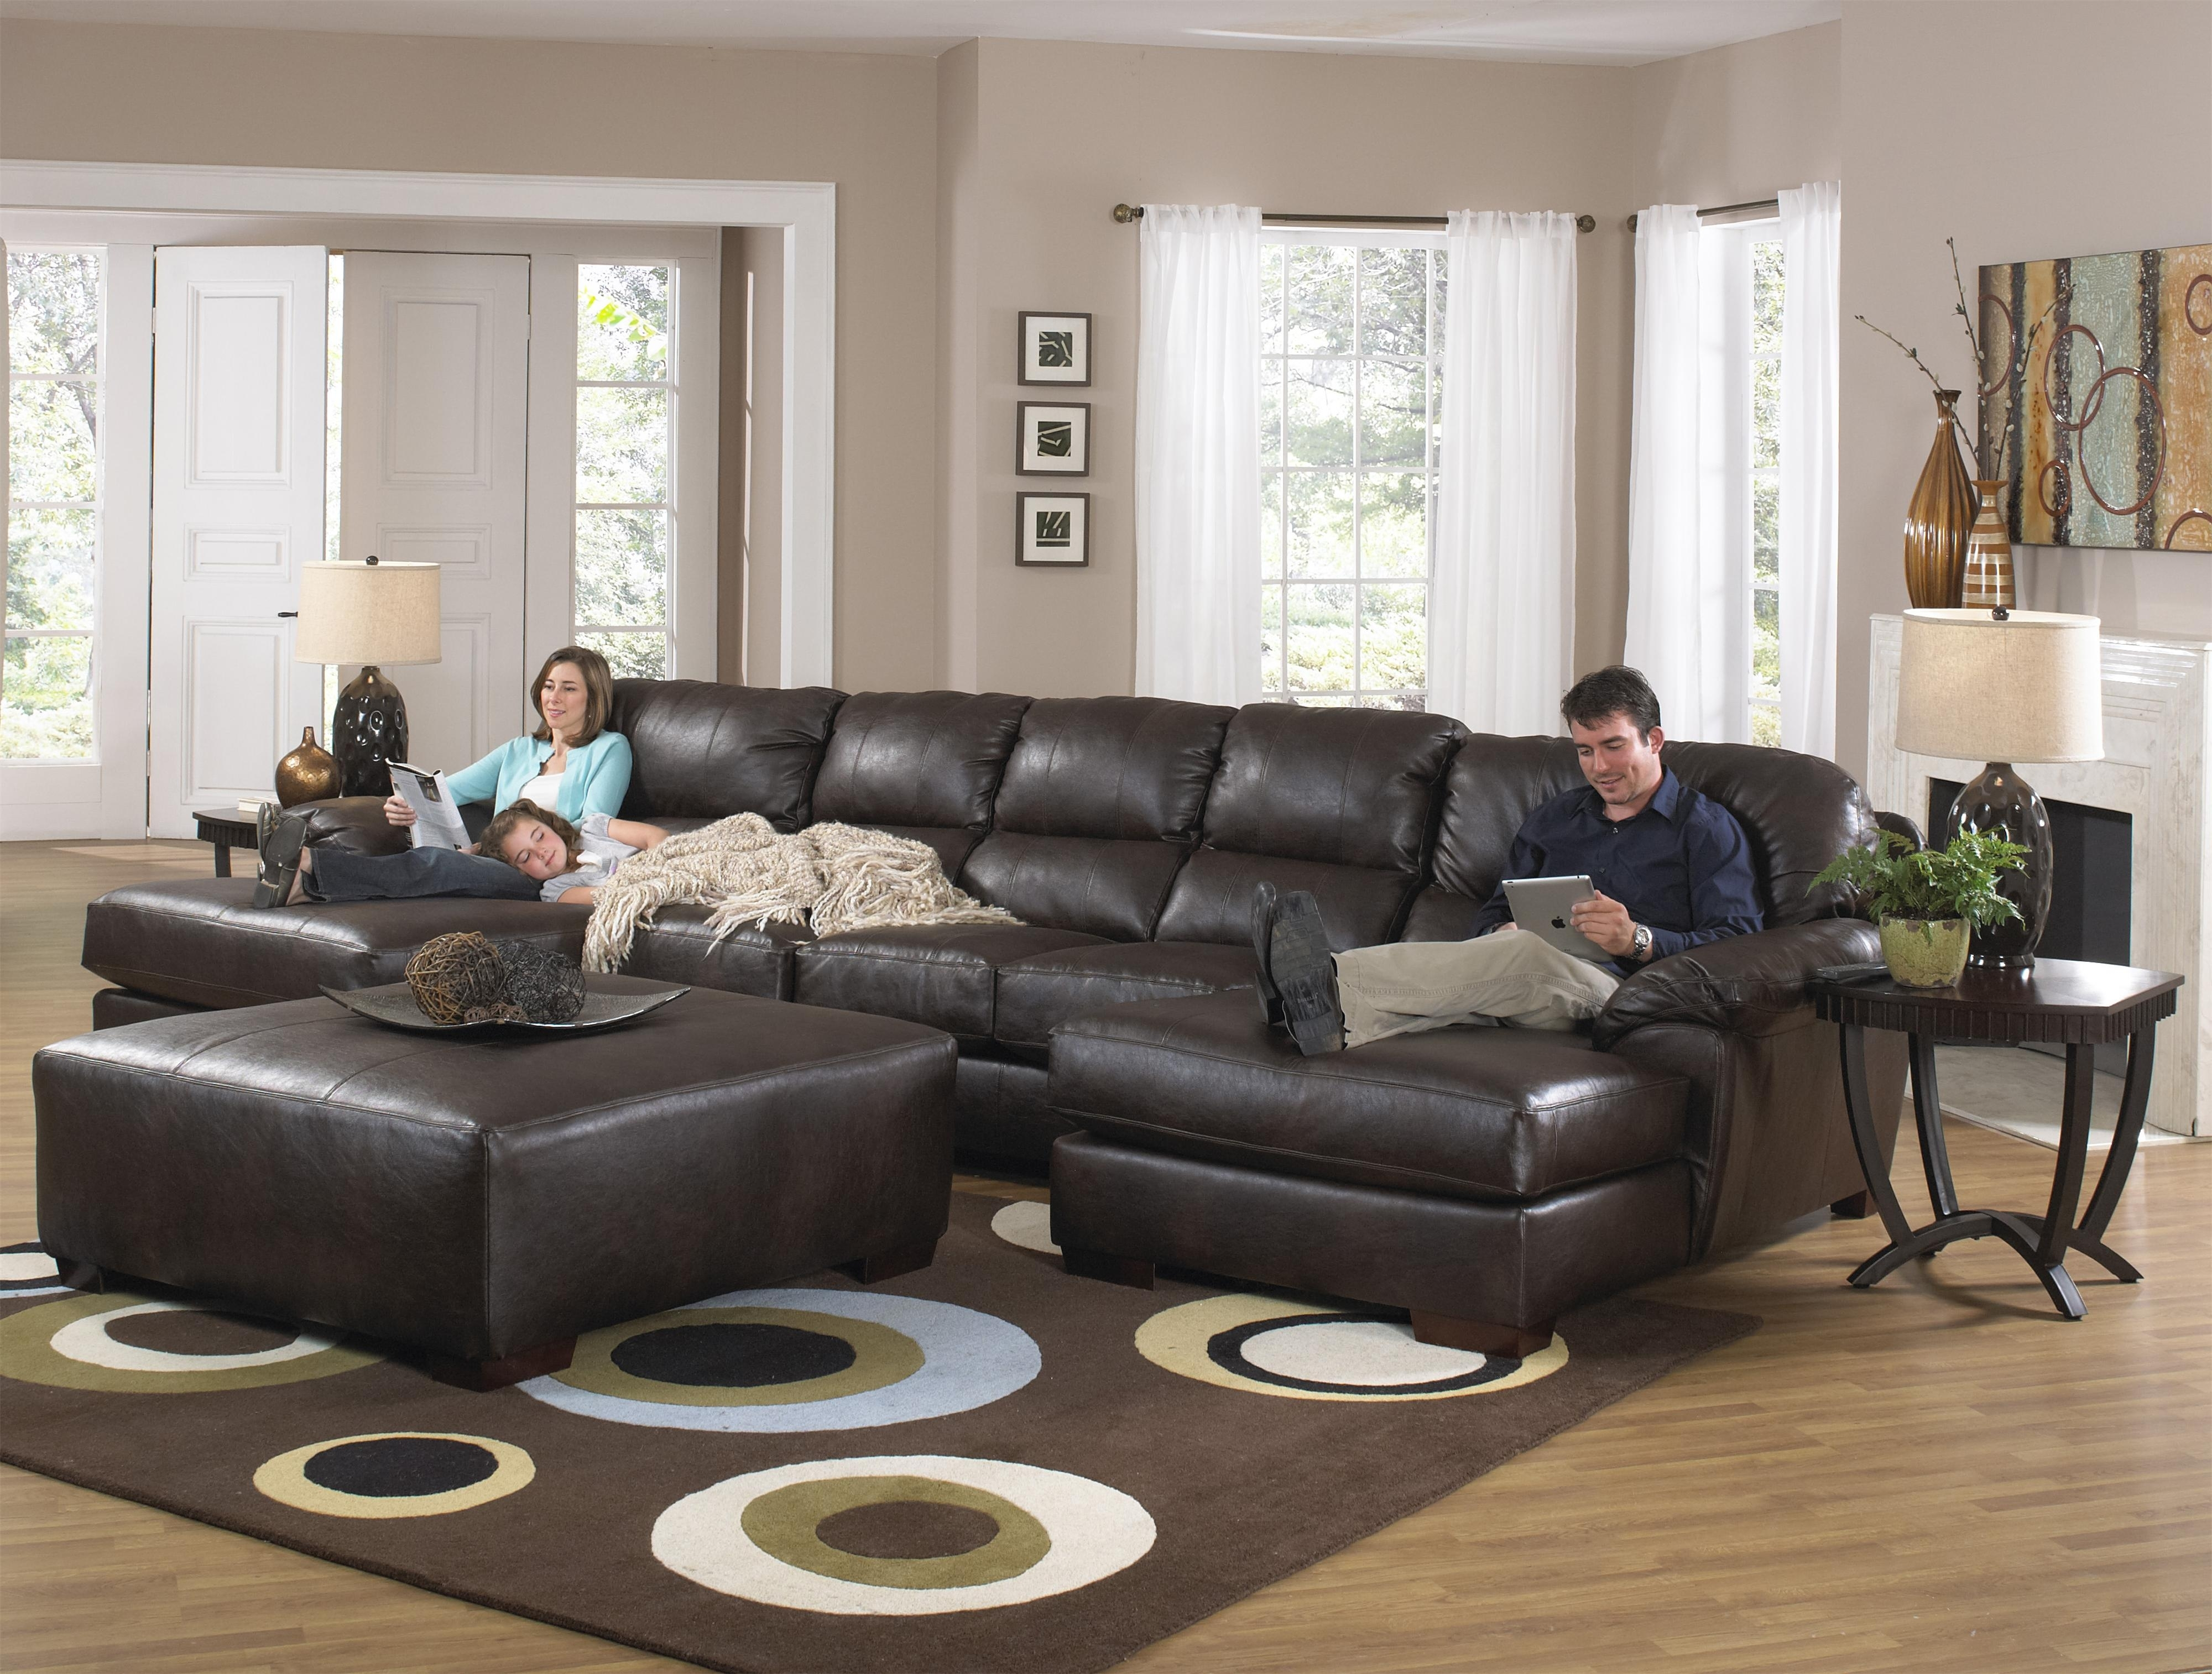 Two Chaise Sectional Sofa With Five Total Seatsjackson Furniture Within Long Sectional Sofas With Chaise (View 2 of 10)